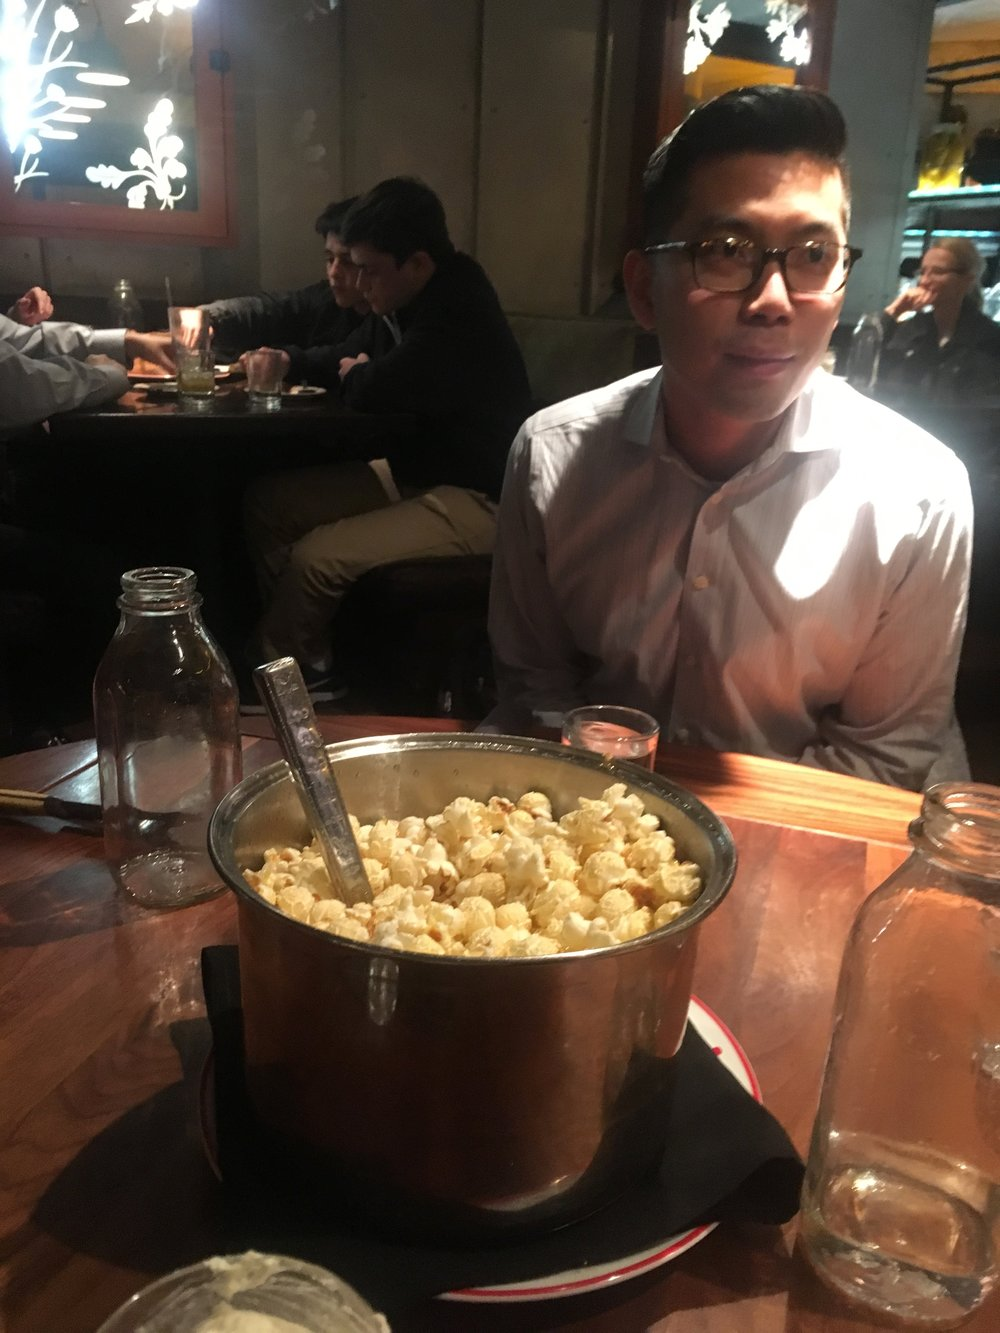 D.C. has a lot of awesome restaurants, including this one that served kettle corn for an appetizer!